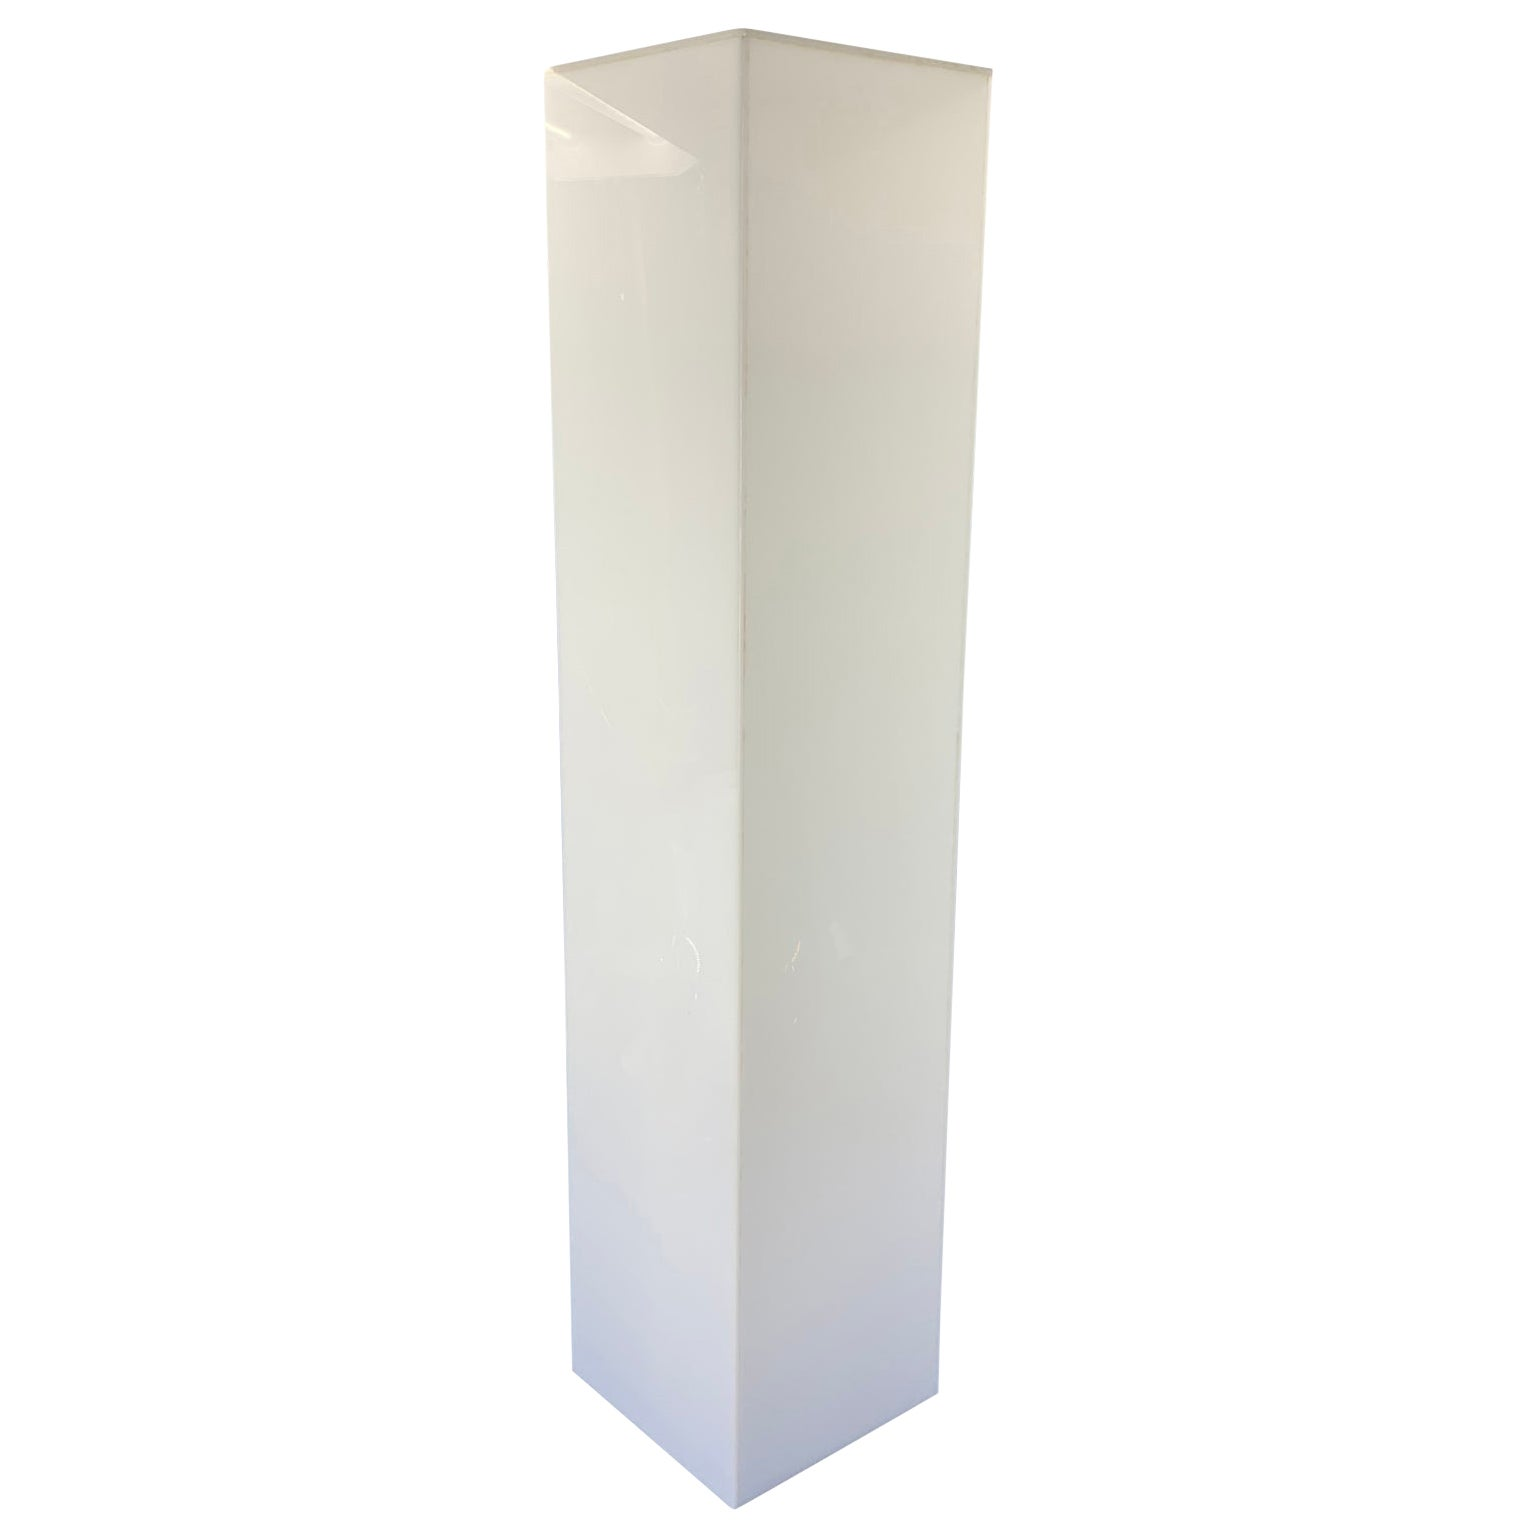 Tall 1970s Electrified White Lucite Or Acrylic Pedestal Stand Display Column